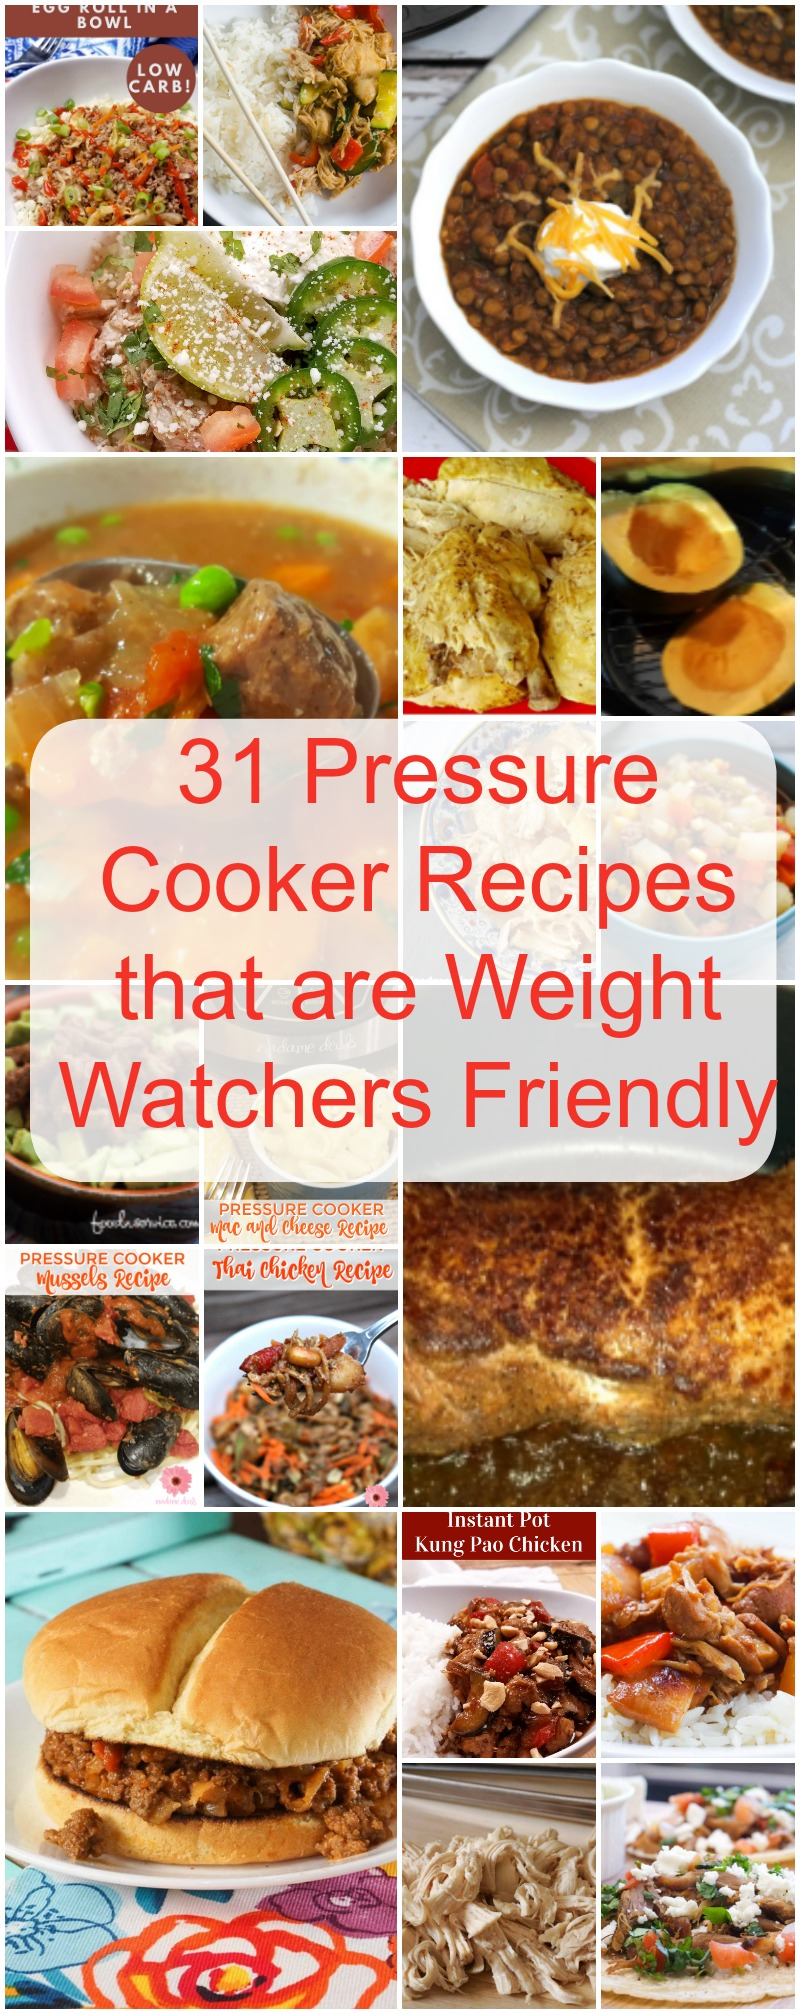 31 Pressure Cooker Recipes for Weight Watchers